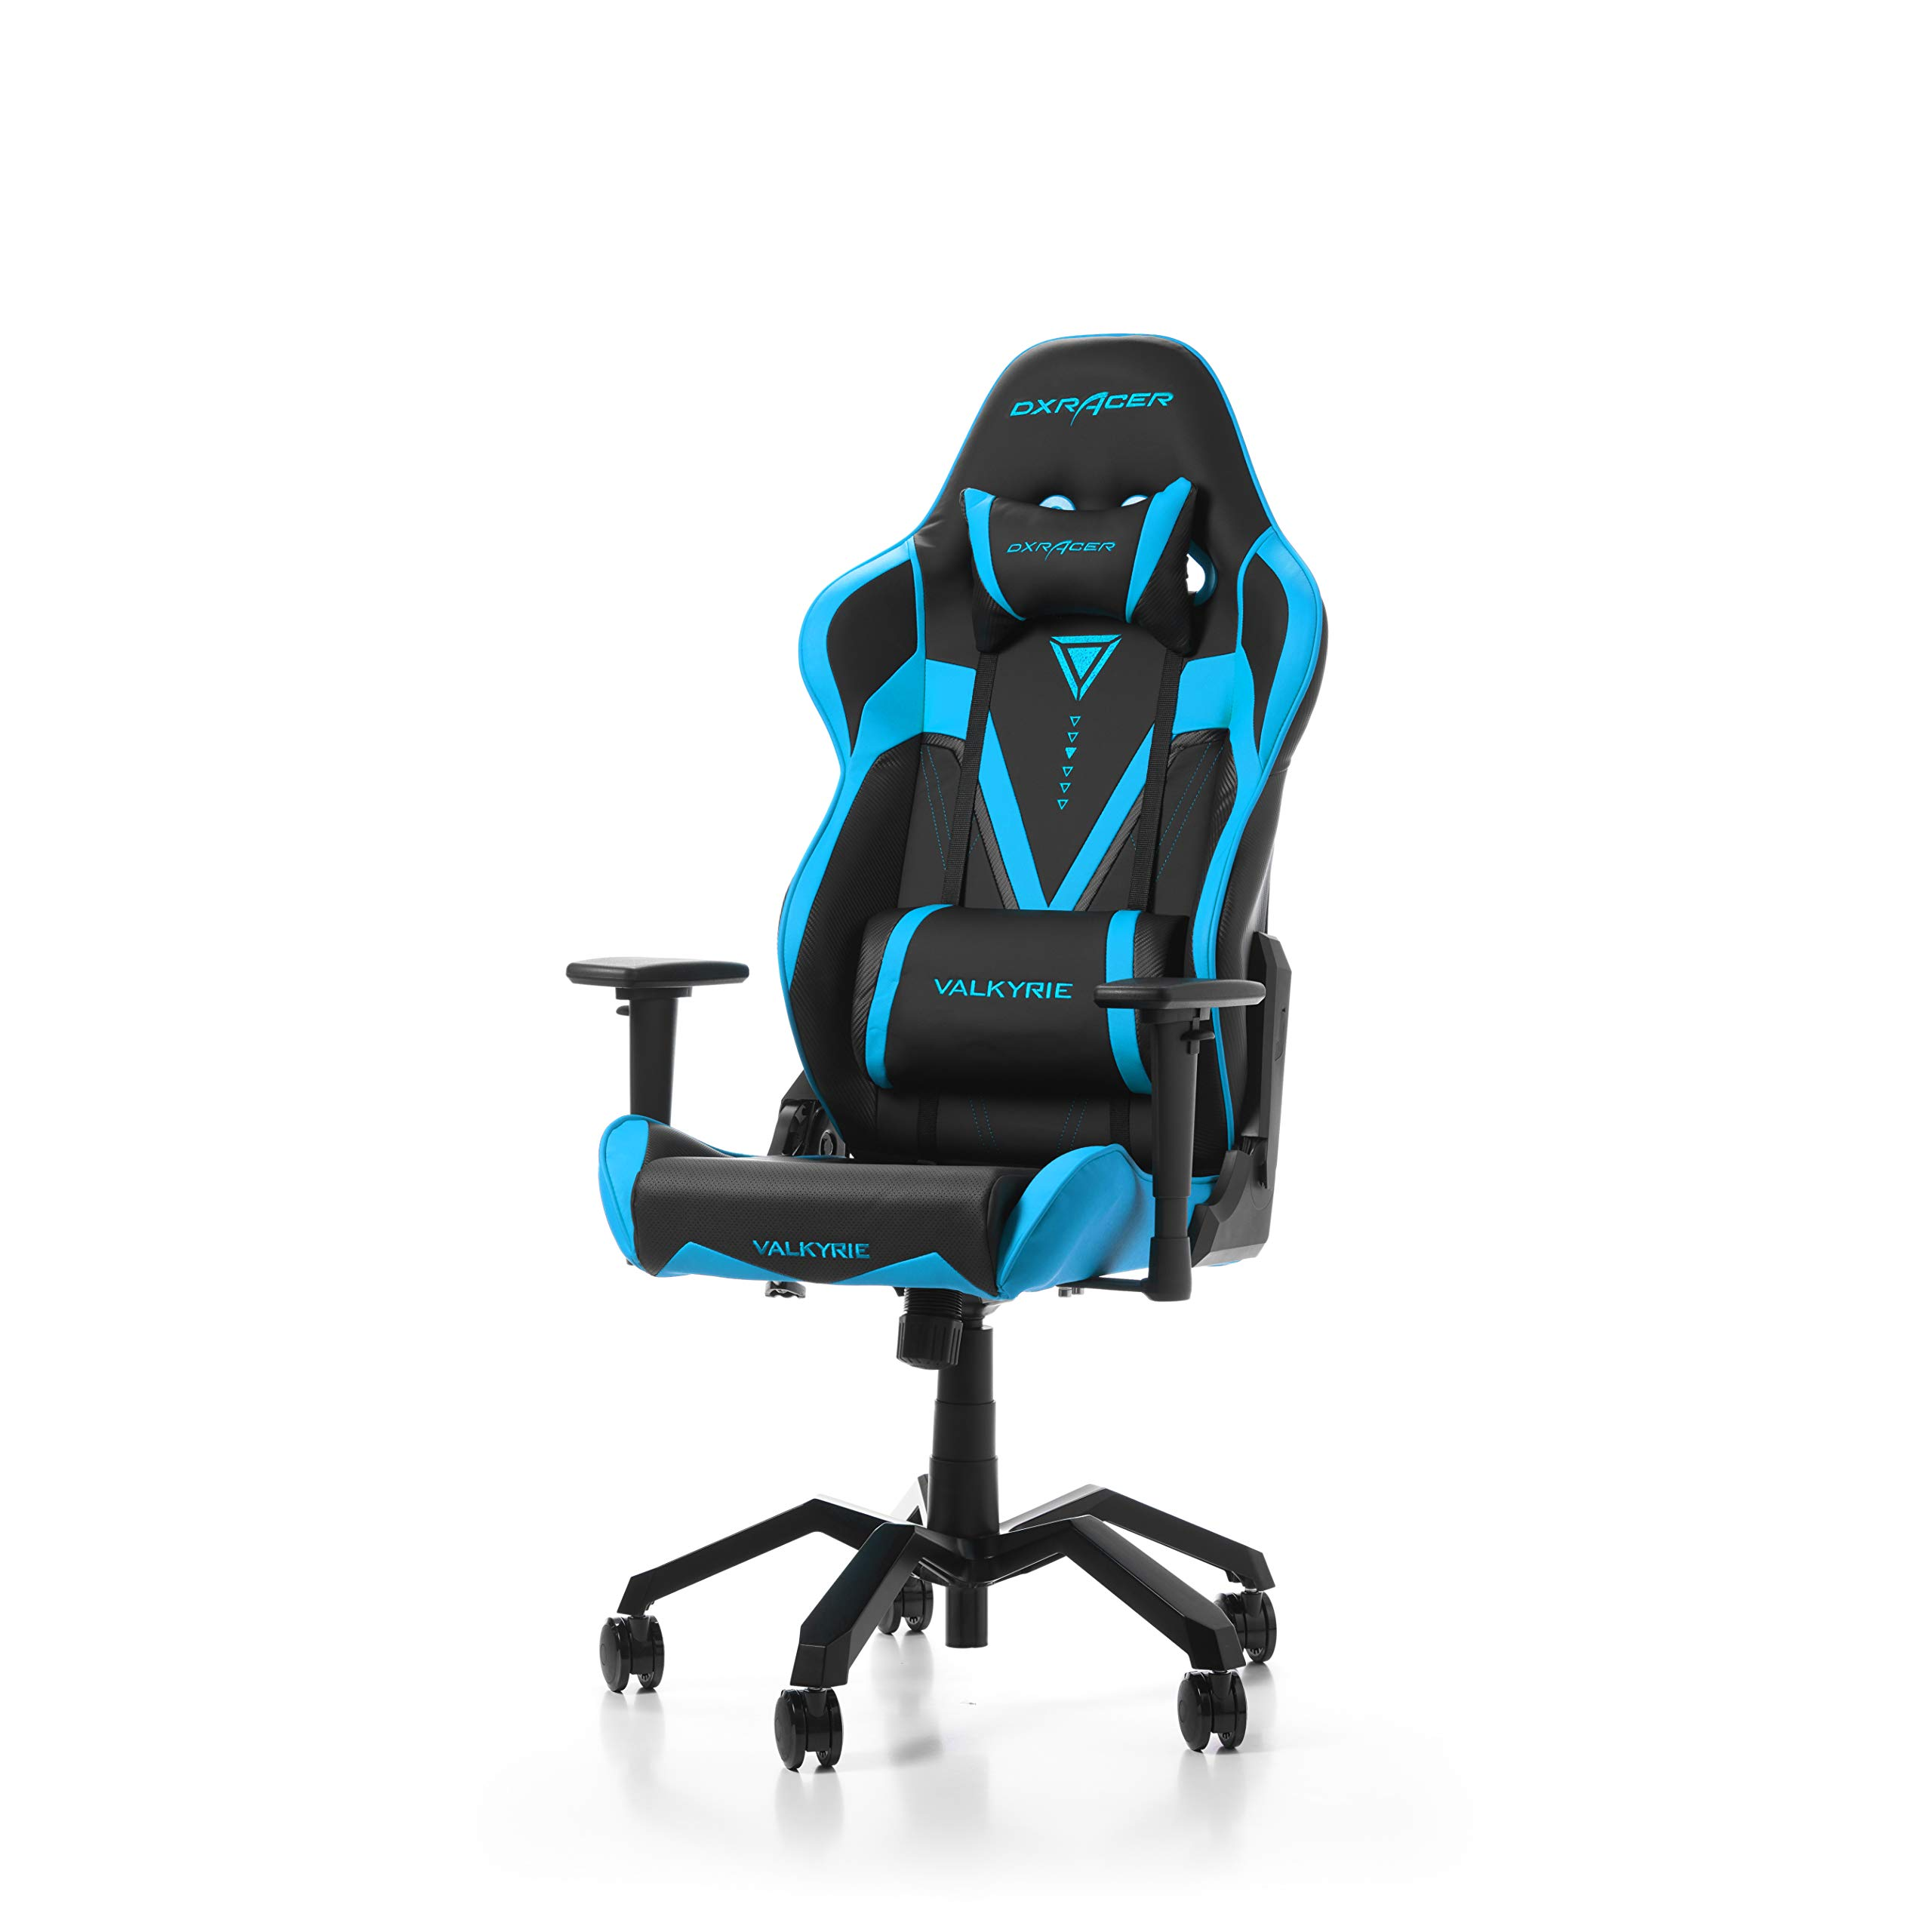 DXRacer Valkyrie Series VB03 Racing Seat Office Chair Gaming Ergonomic Adjustable Computer Chair with - Included Head and Lumbar Support Pillows (Black/Blue) by DXRacer